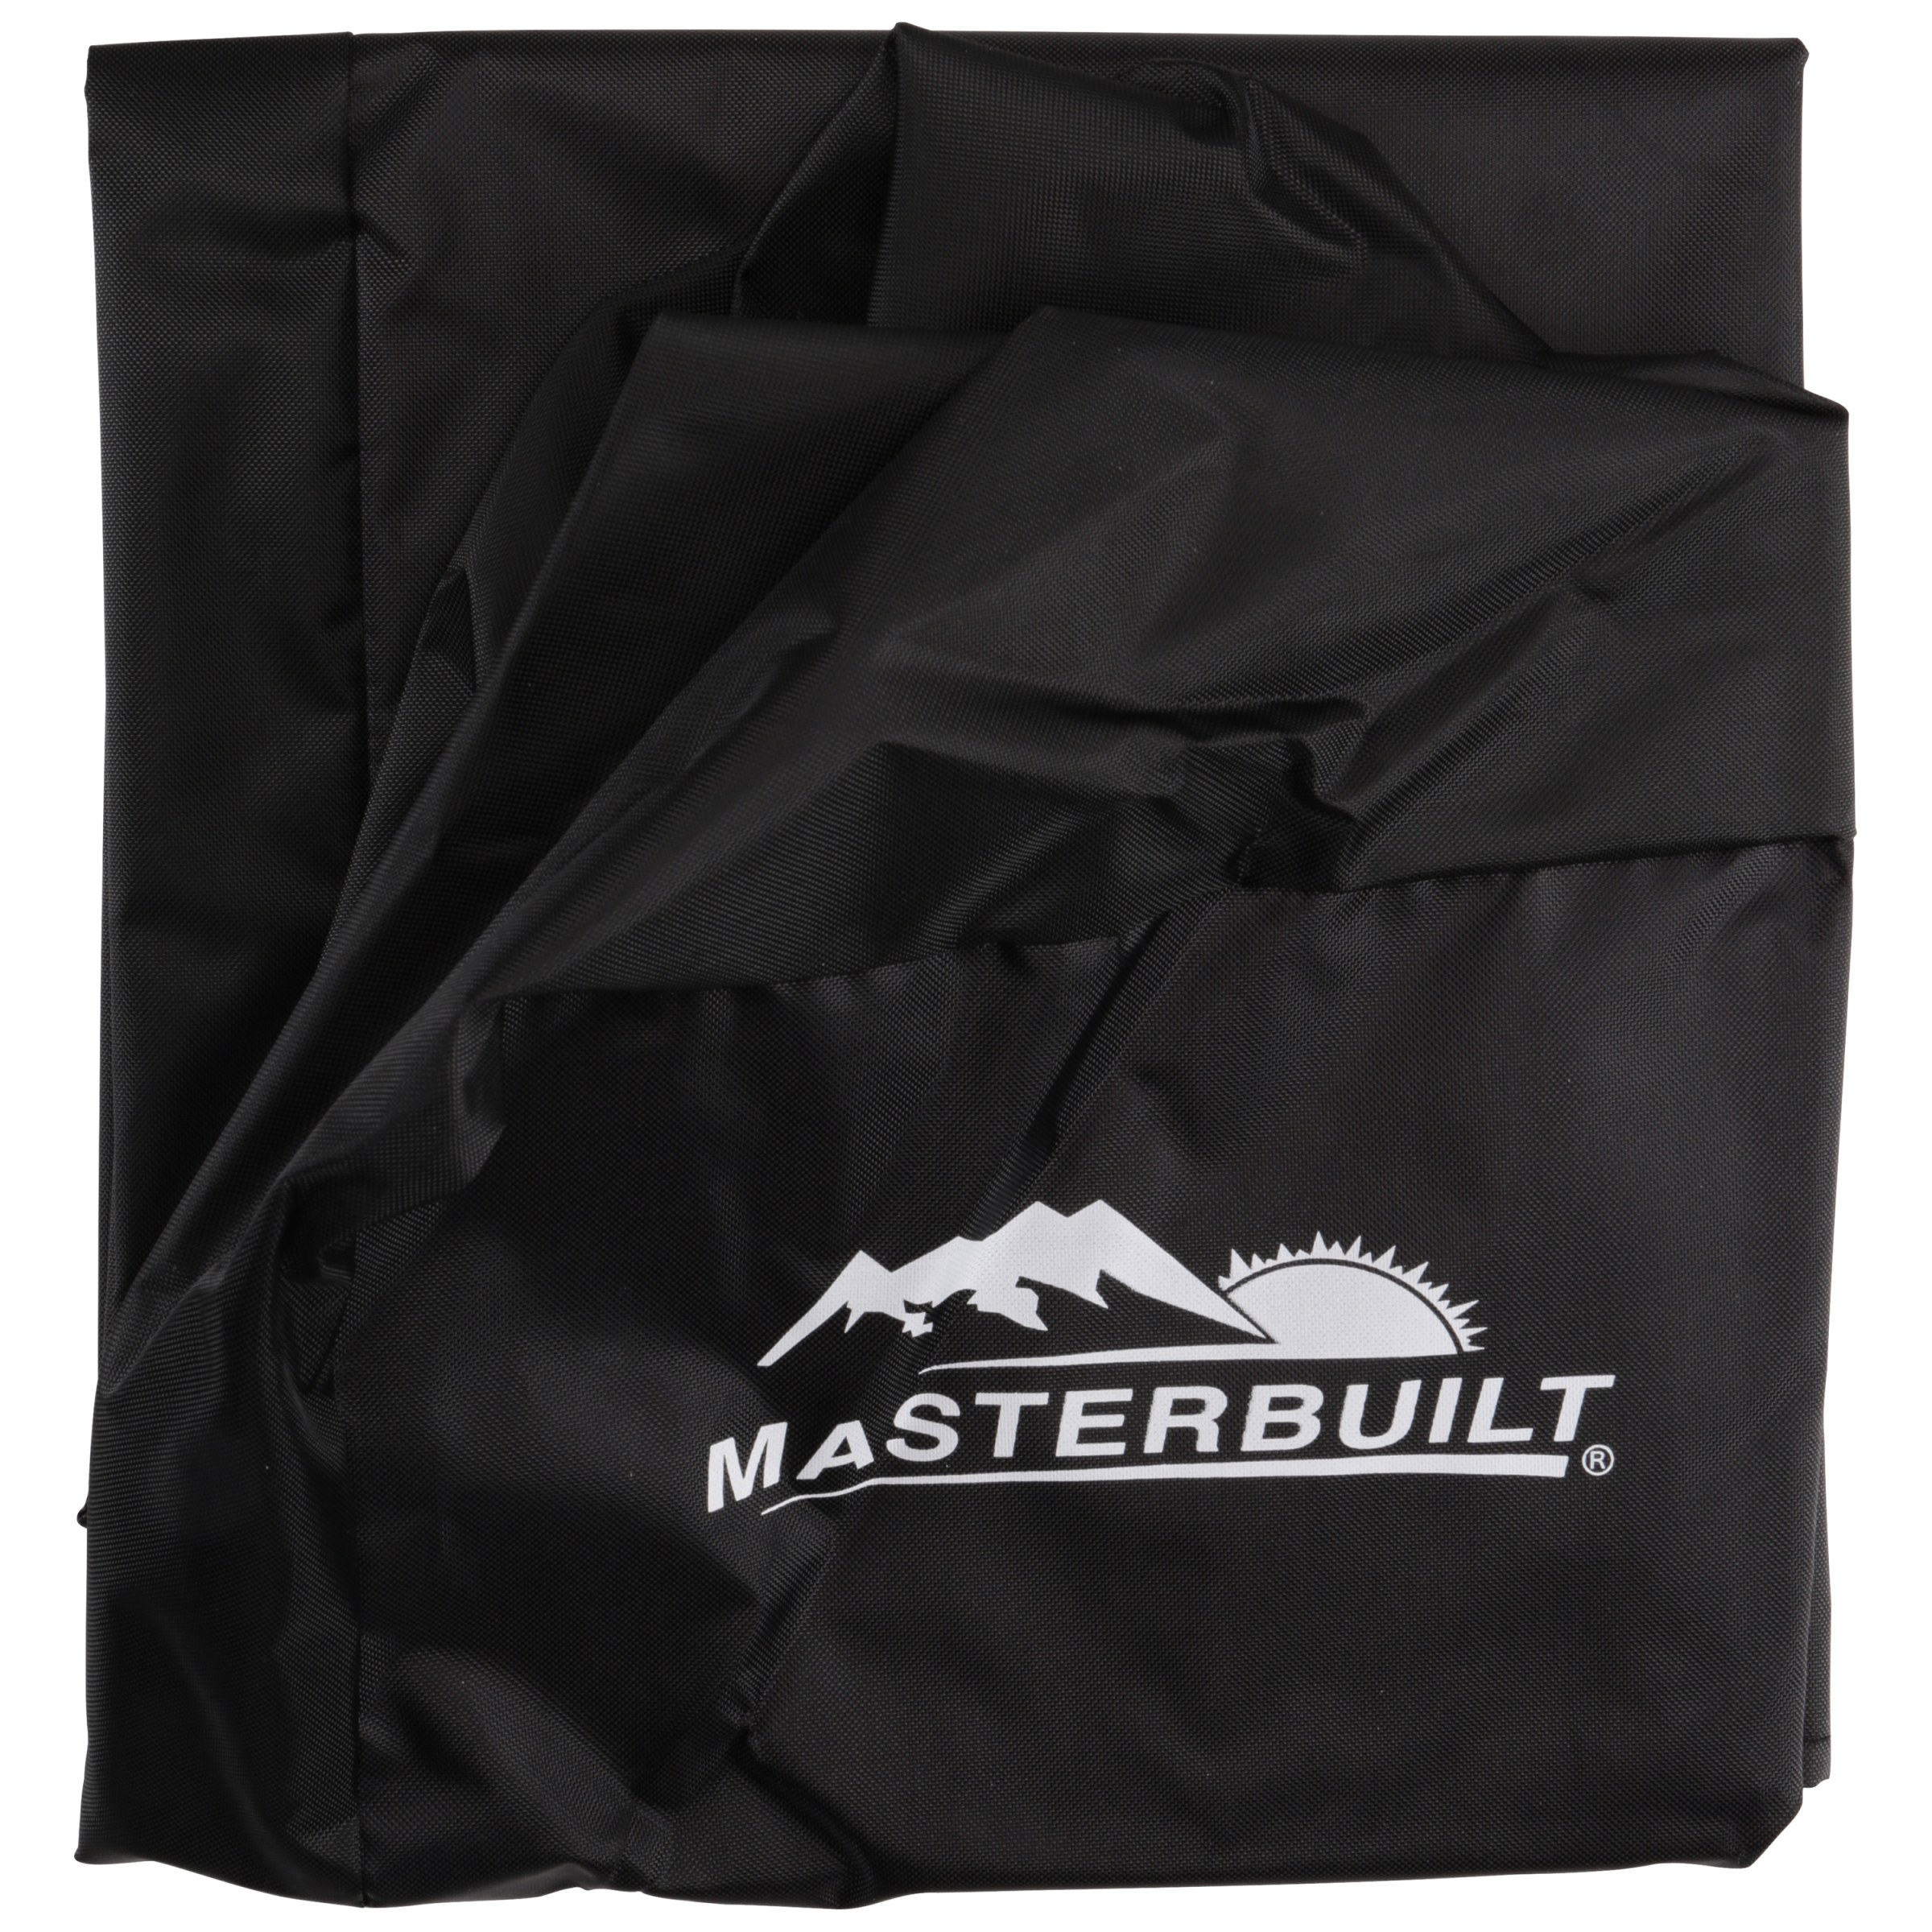 Masterbuilt Smoker Cover for 30-Inch Electric Smokers